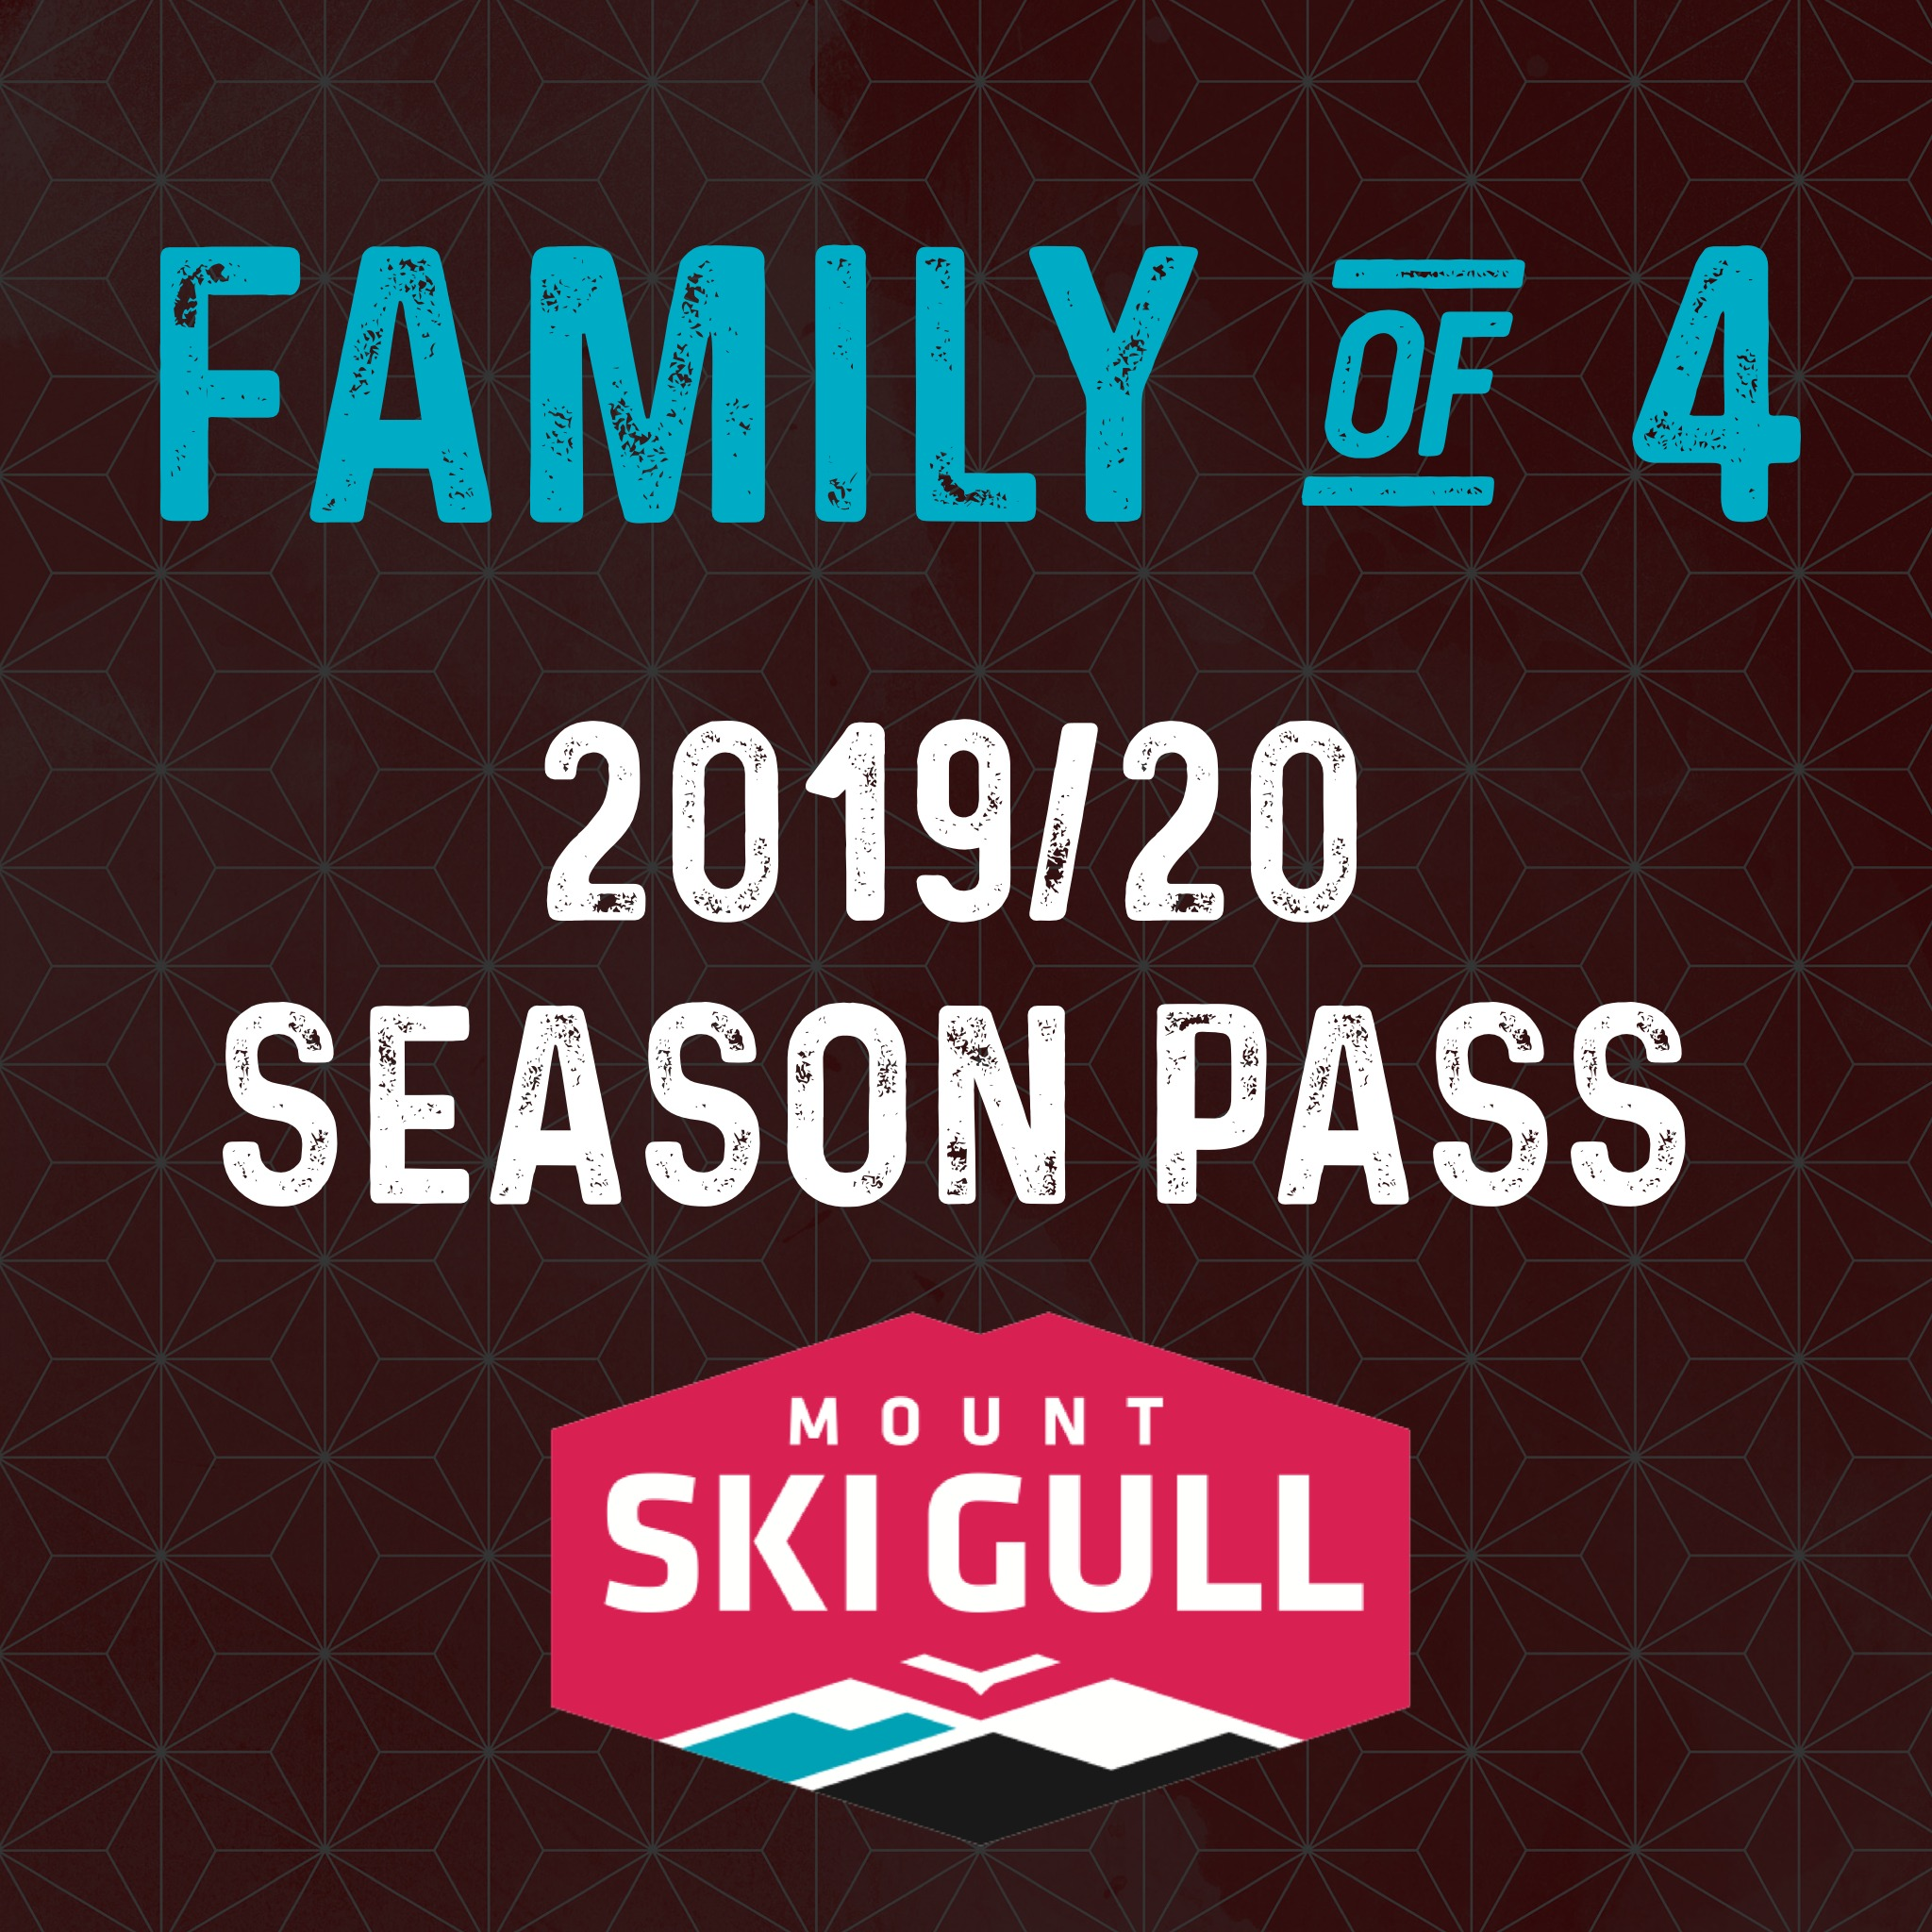 2019/20 Family of 4 Season Pass